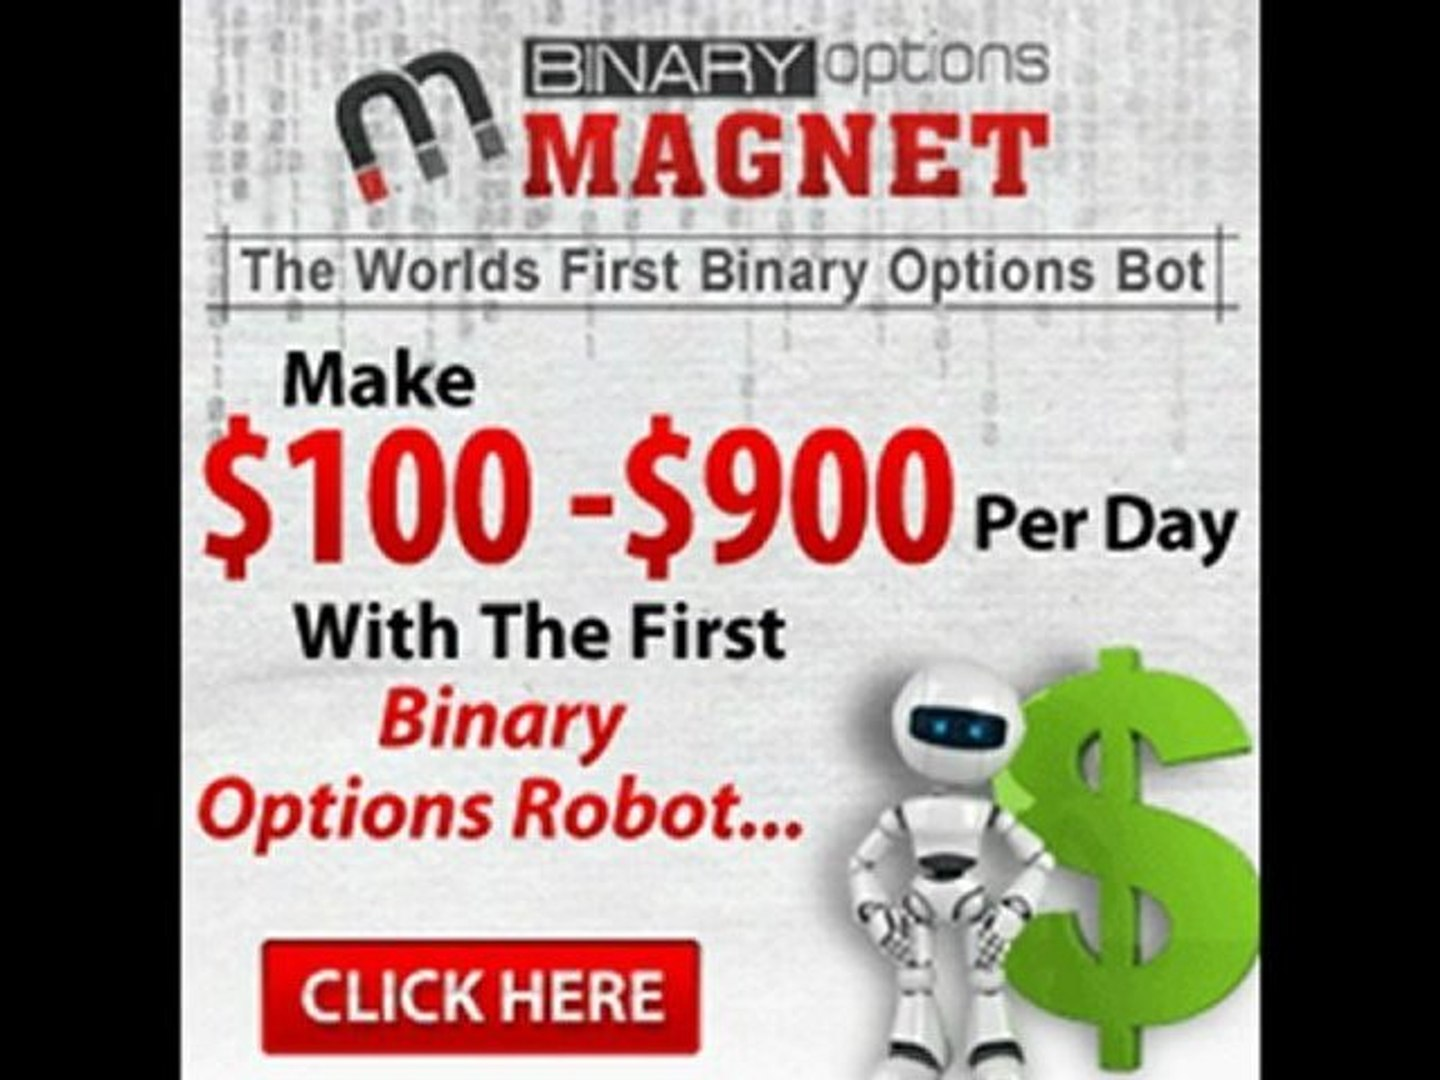 Binary options magnet download 51 attack crypto currency mining